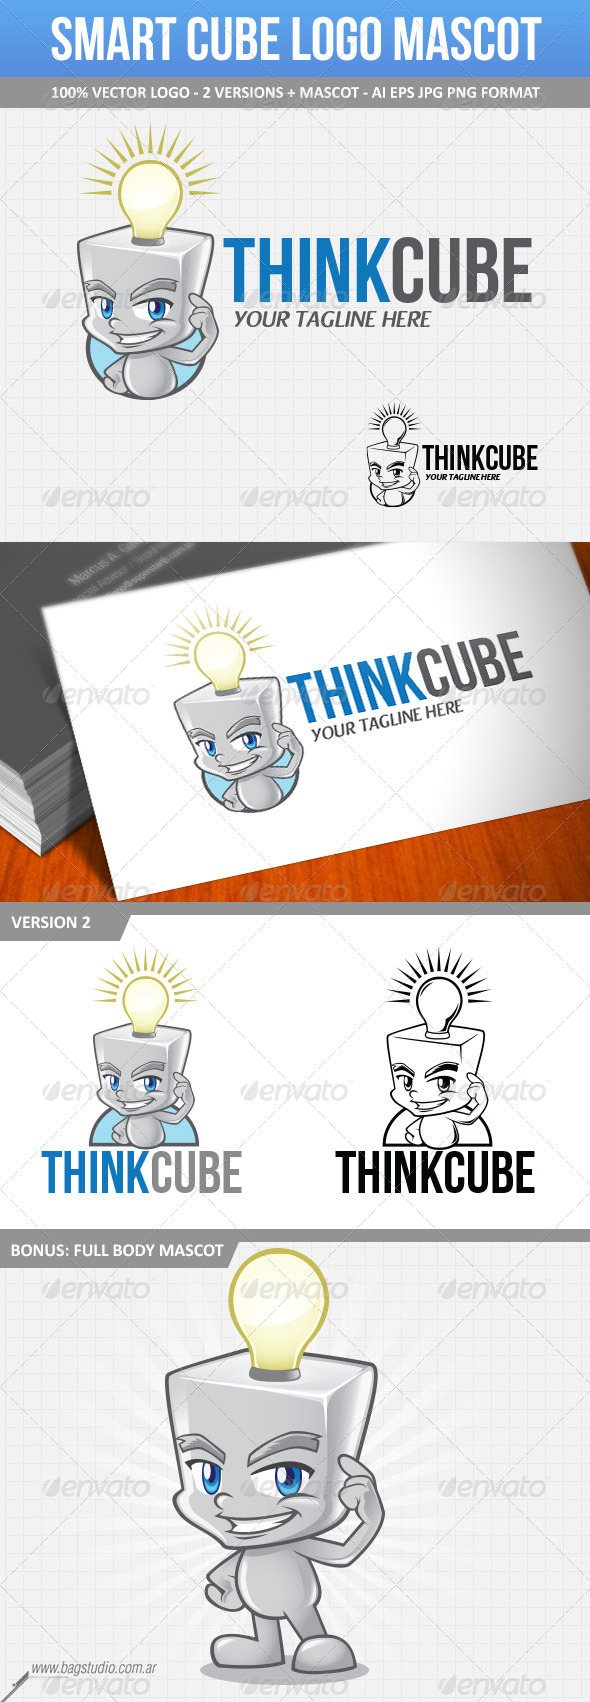 GraphicRiver Smart Cube Vector Logo Mascot 7079353